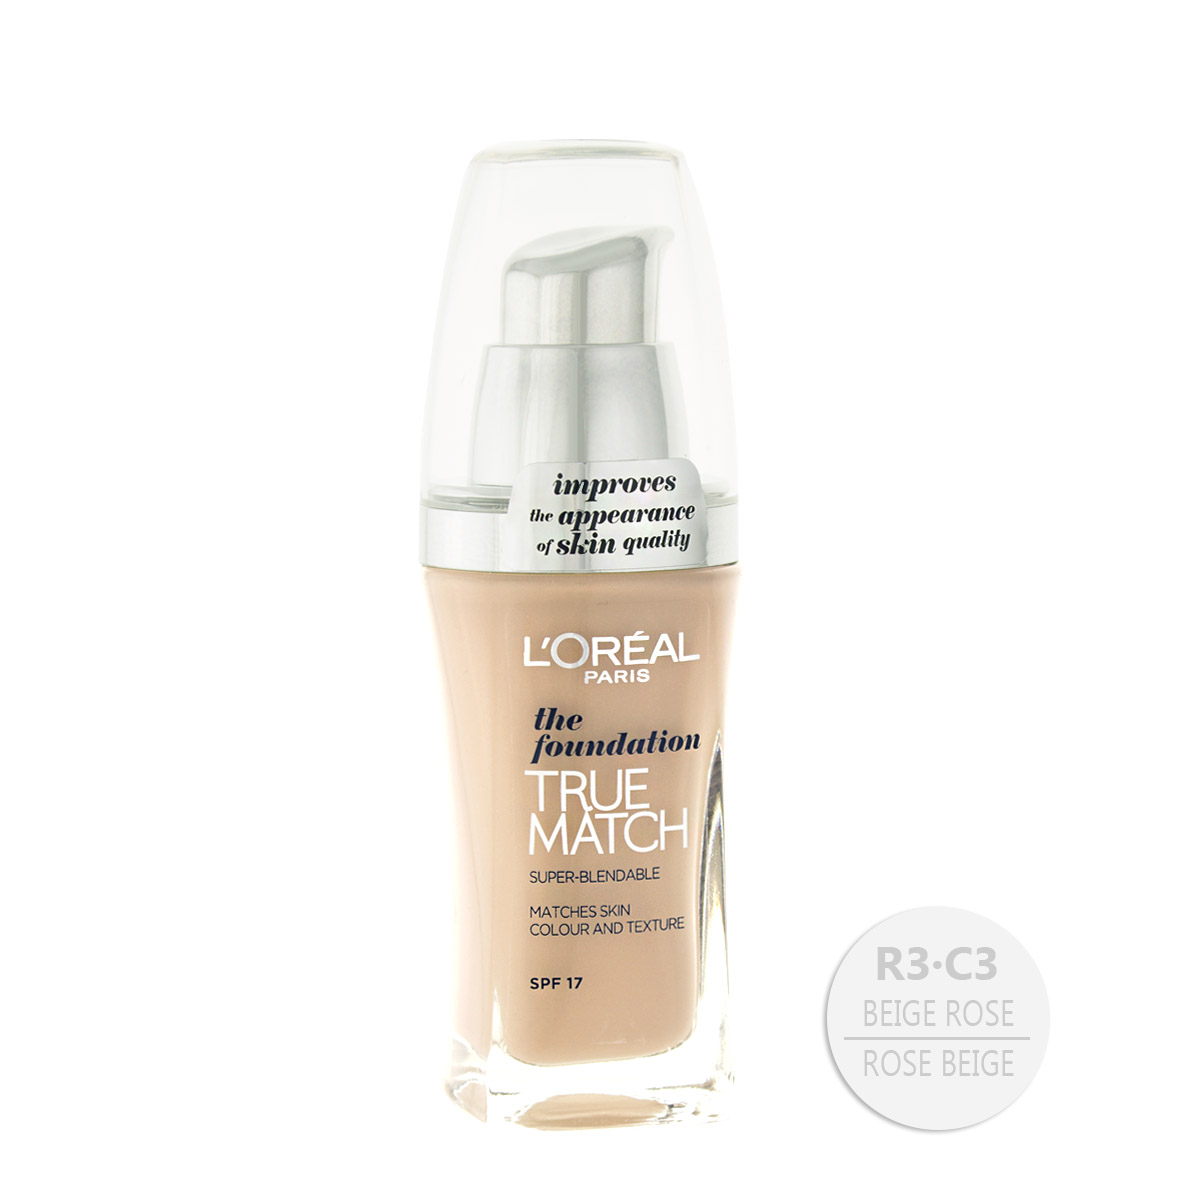 L´Oreal Paris True Match the foundation make-up (R3/C3 Rose Beige) 30 ml